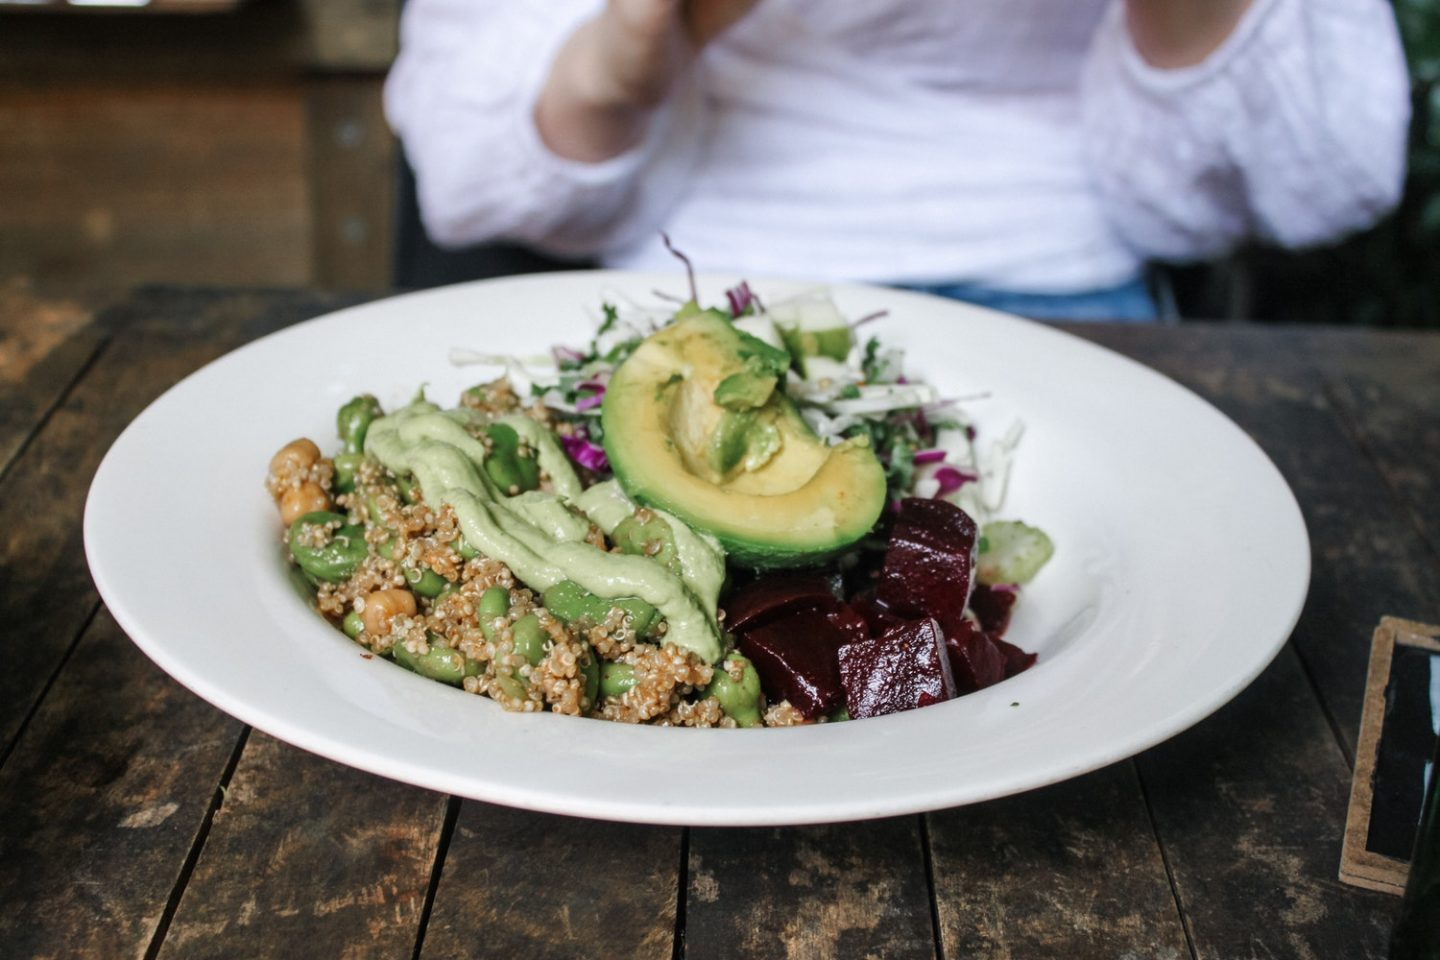 4 Health Benefits Of Having Quinoa As Part Of Your Dinner